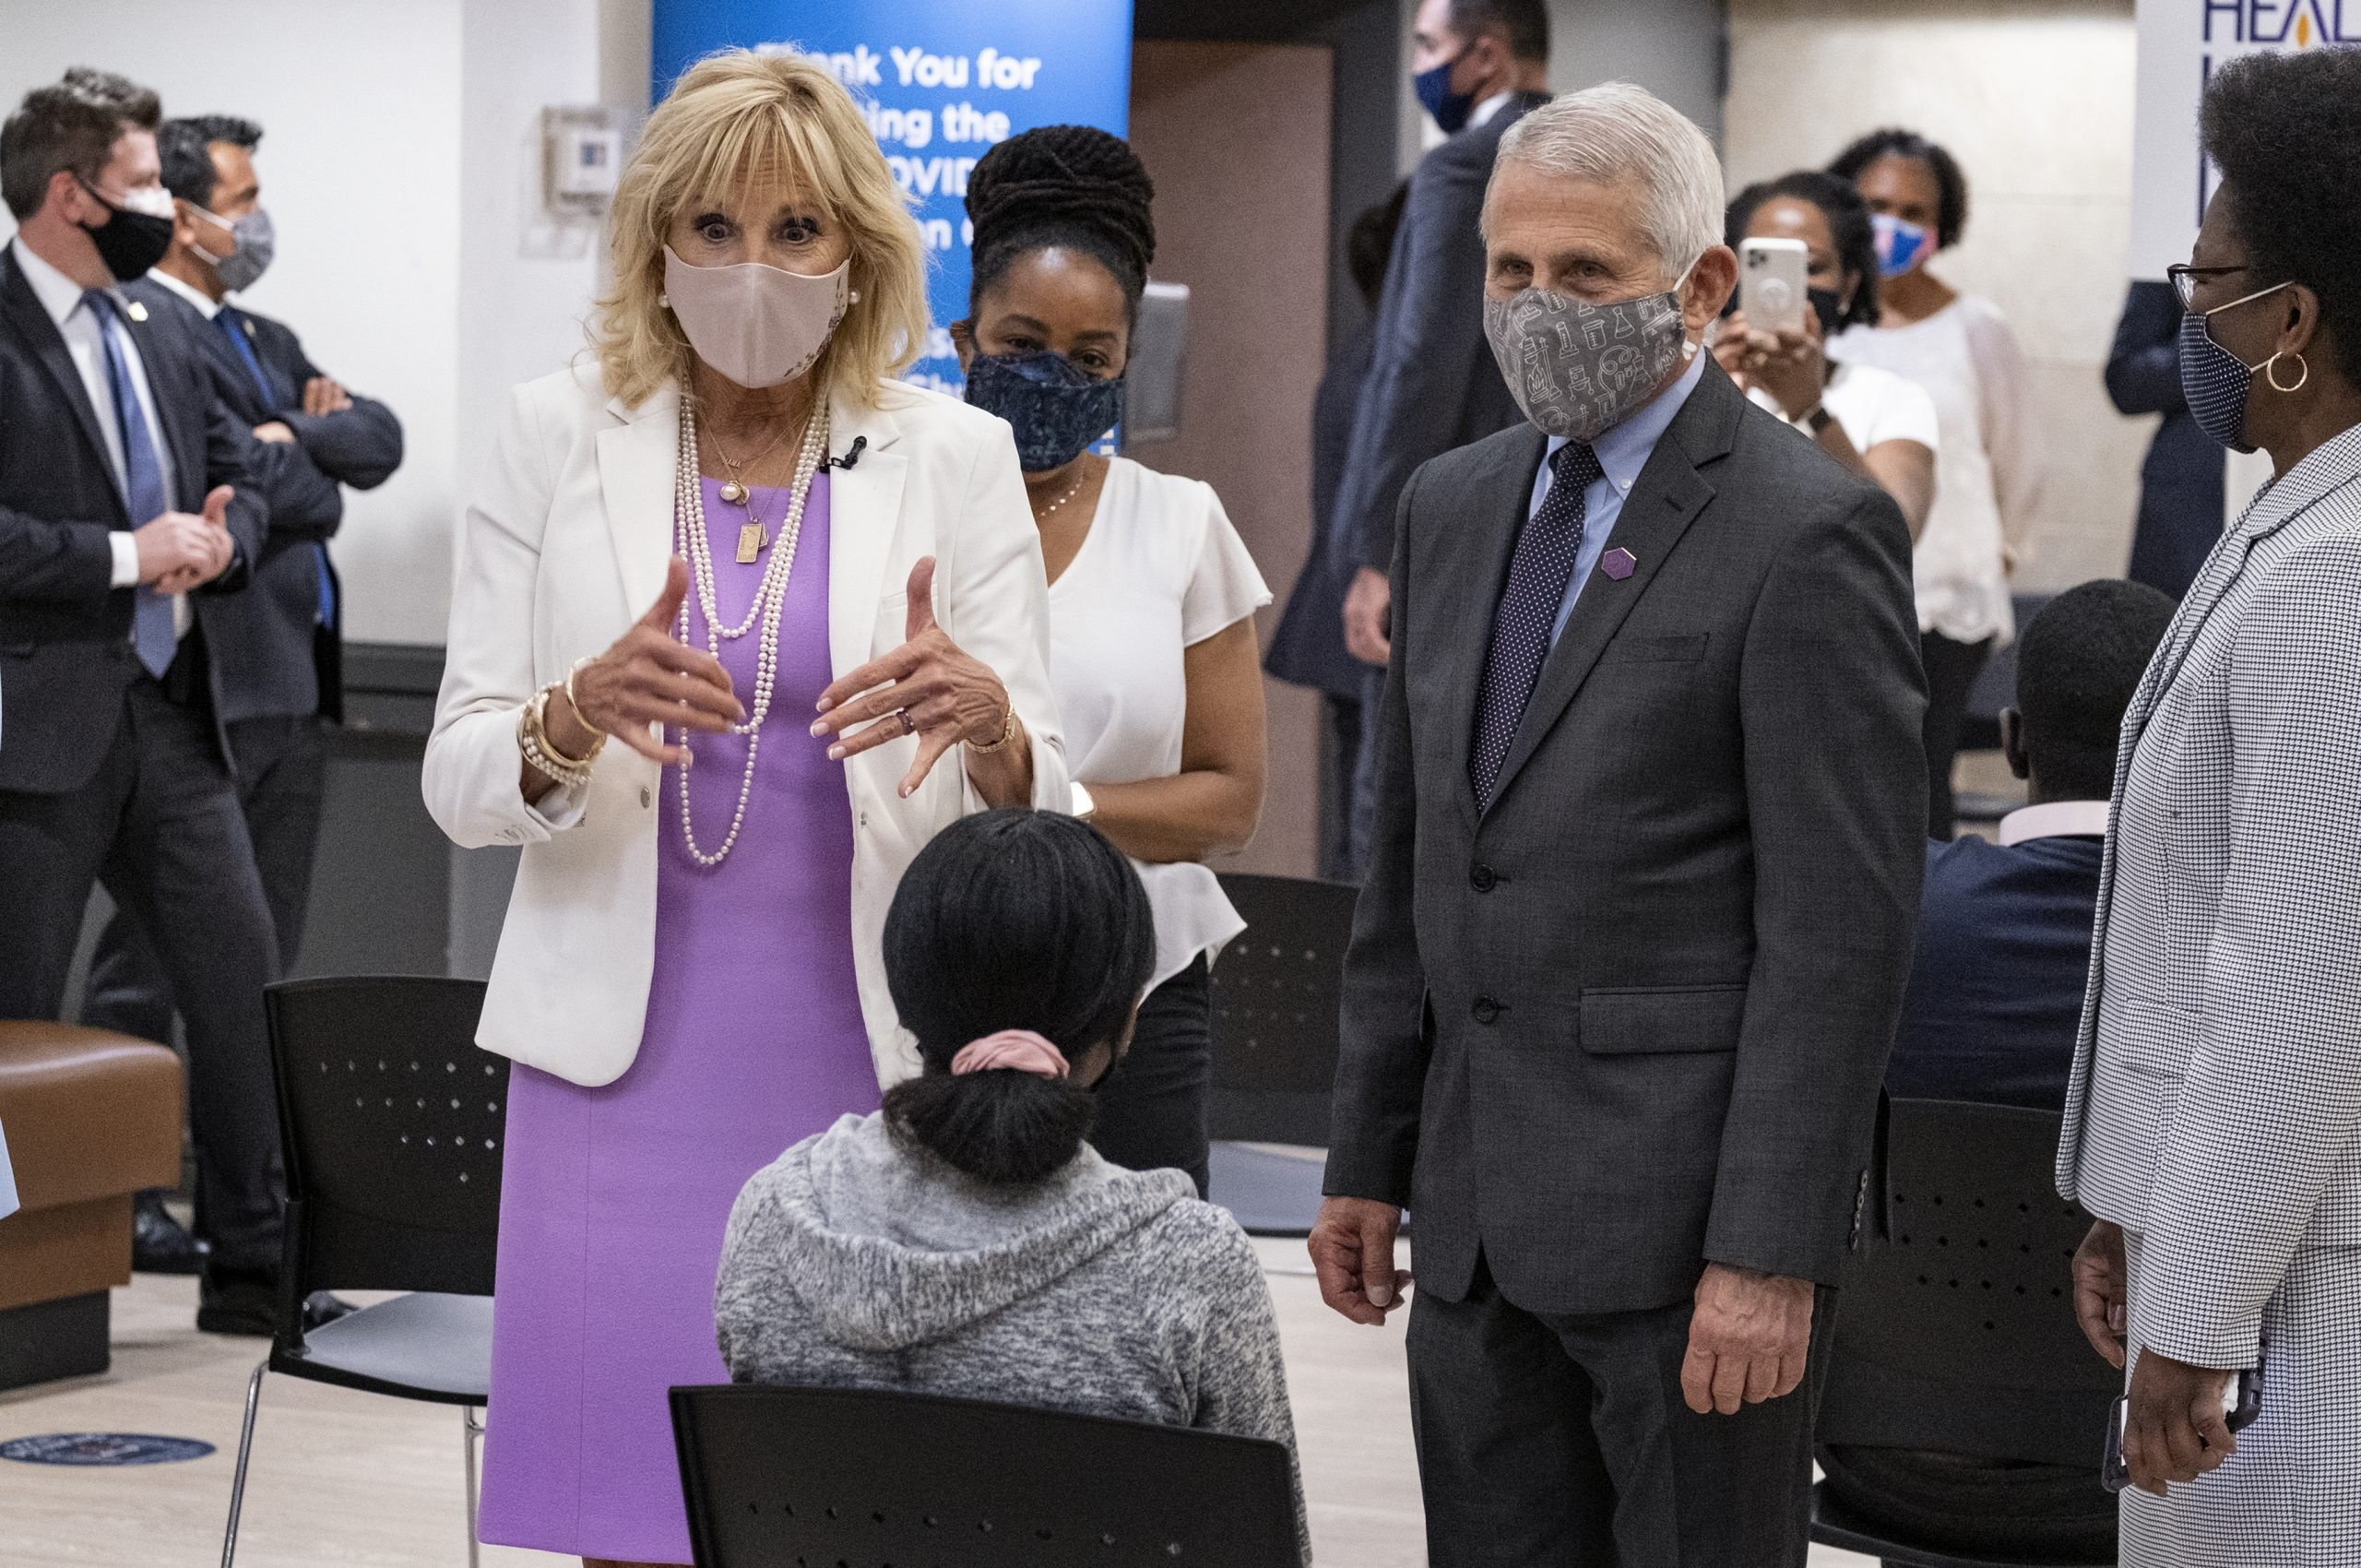 First lady Jill Biden, center left, and Dr. Anthony Fauci, director of the National Institute of Allergy and Infectious Diseases, visit a vaccine clinic at the Abyssinian Baptist Church in the Harlem neighborhood of New York Sunday, June 6, 2021. (AP Photo/Craig Ruttle)